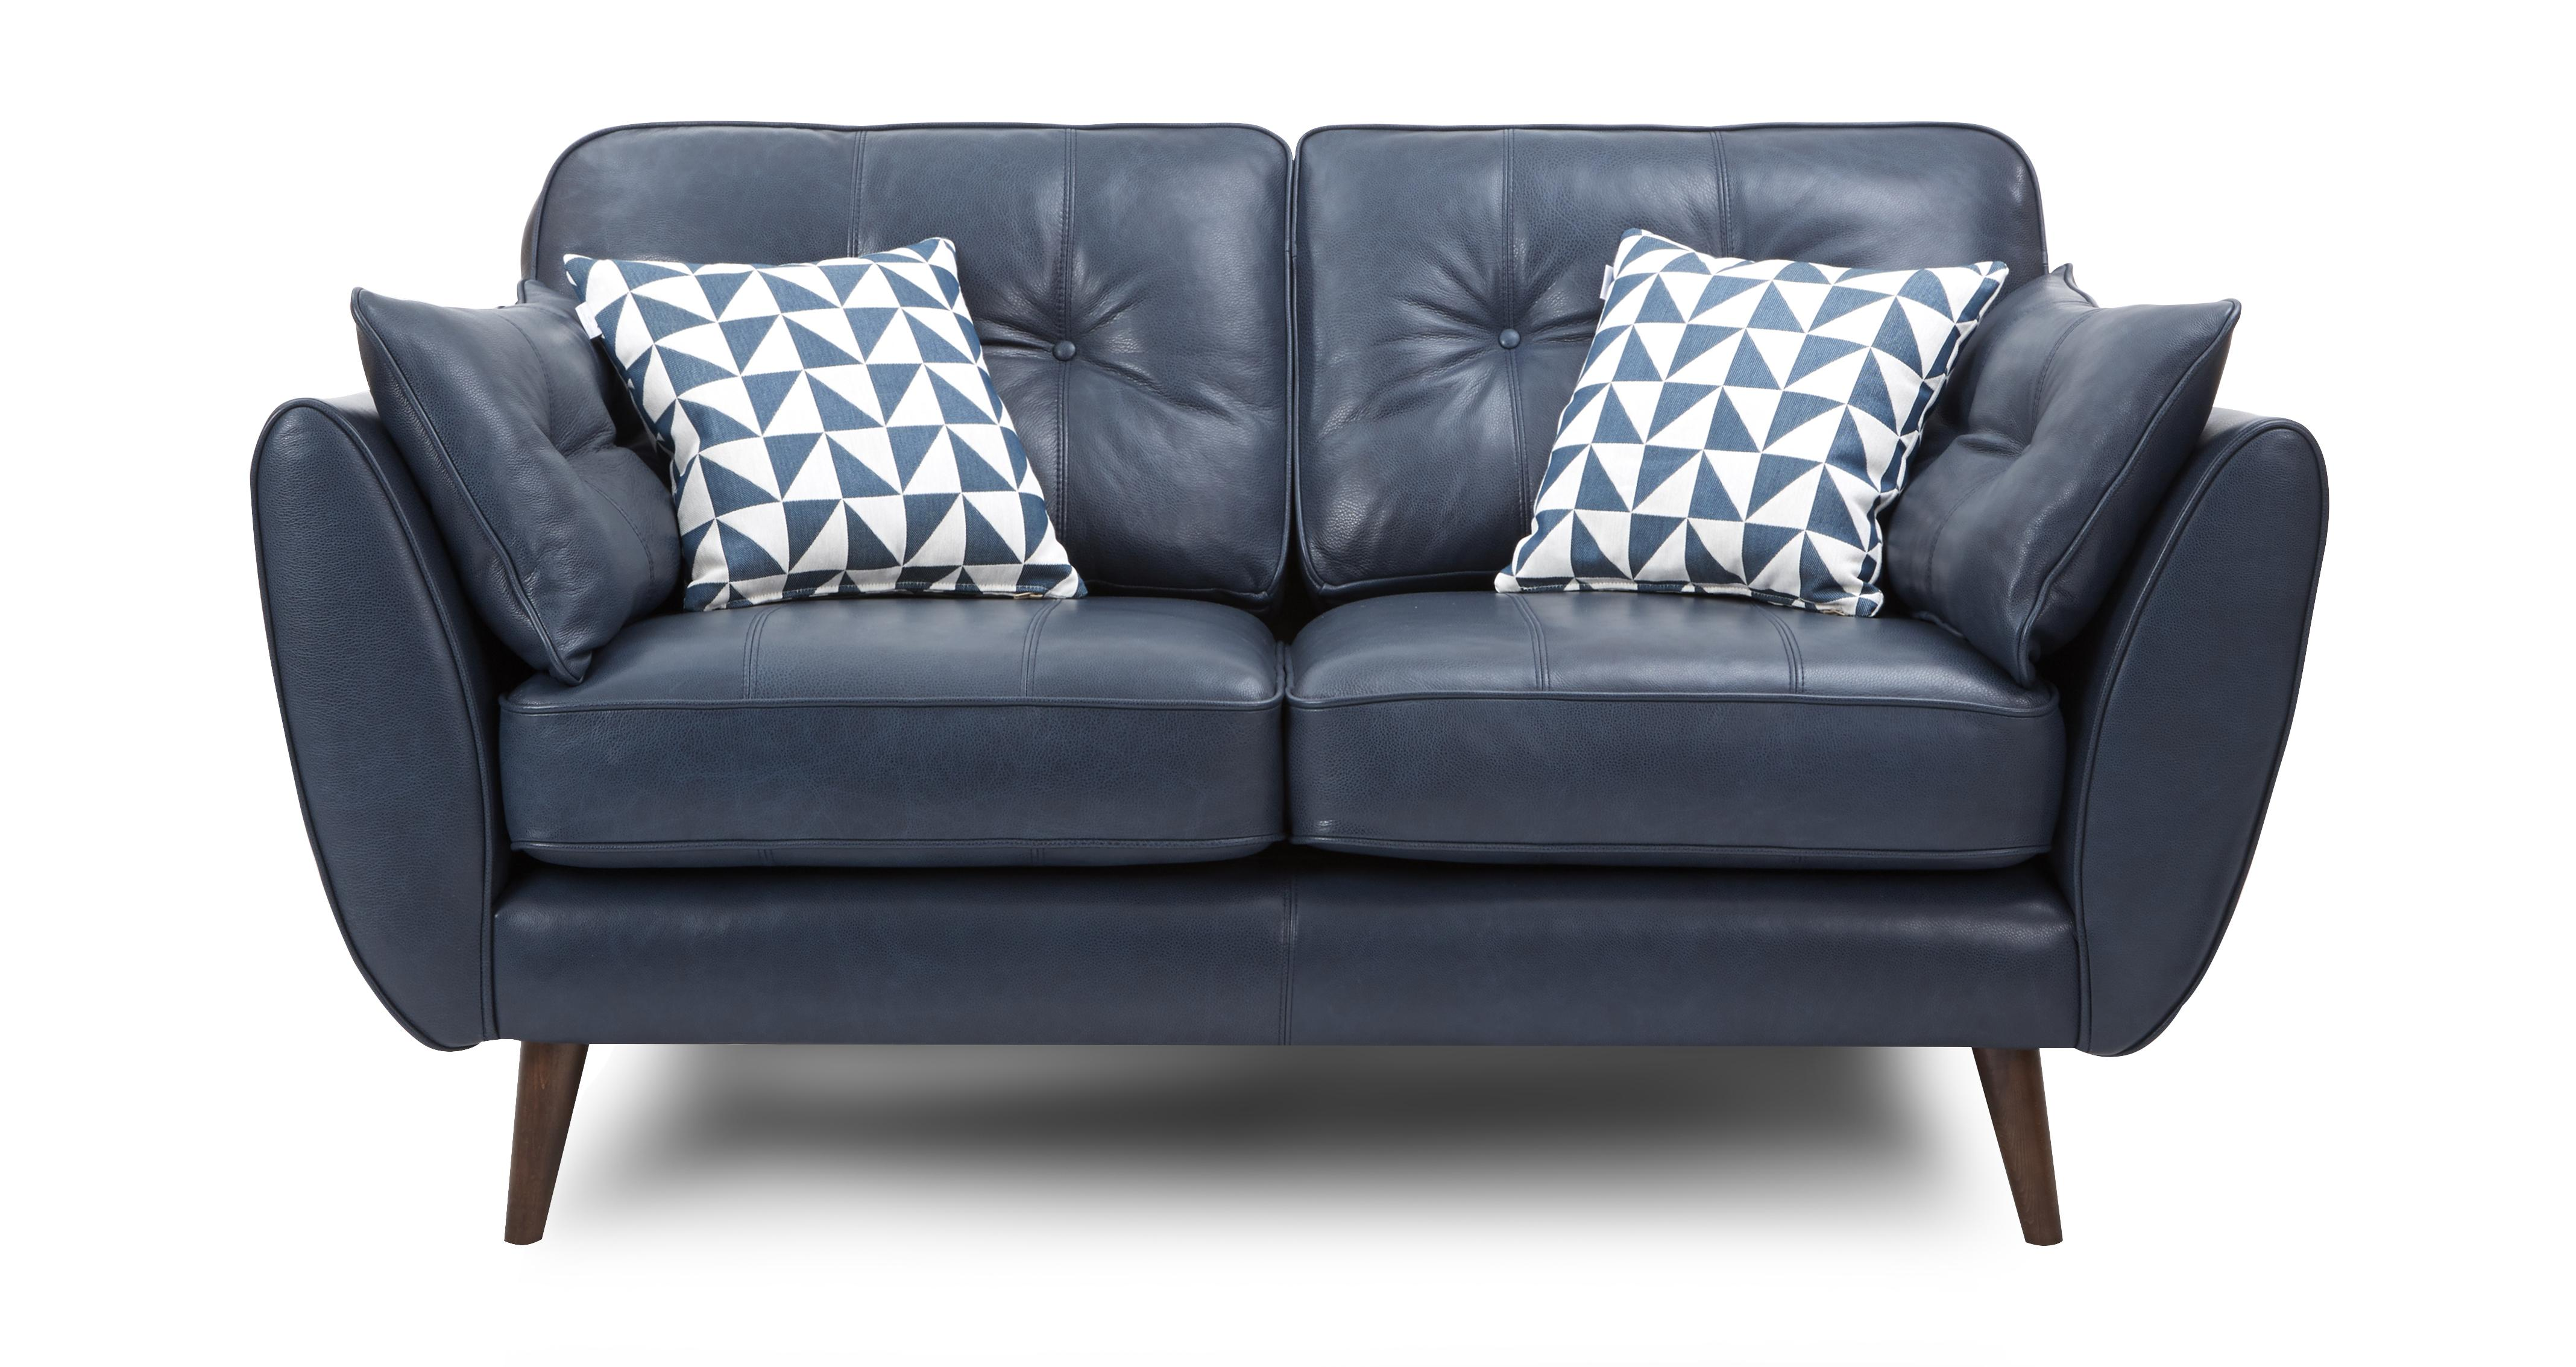 Zinc: Leather 2 Seater Sofa